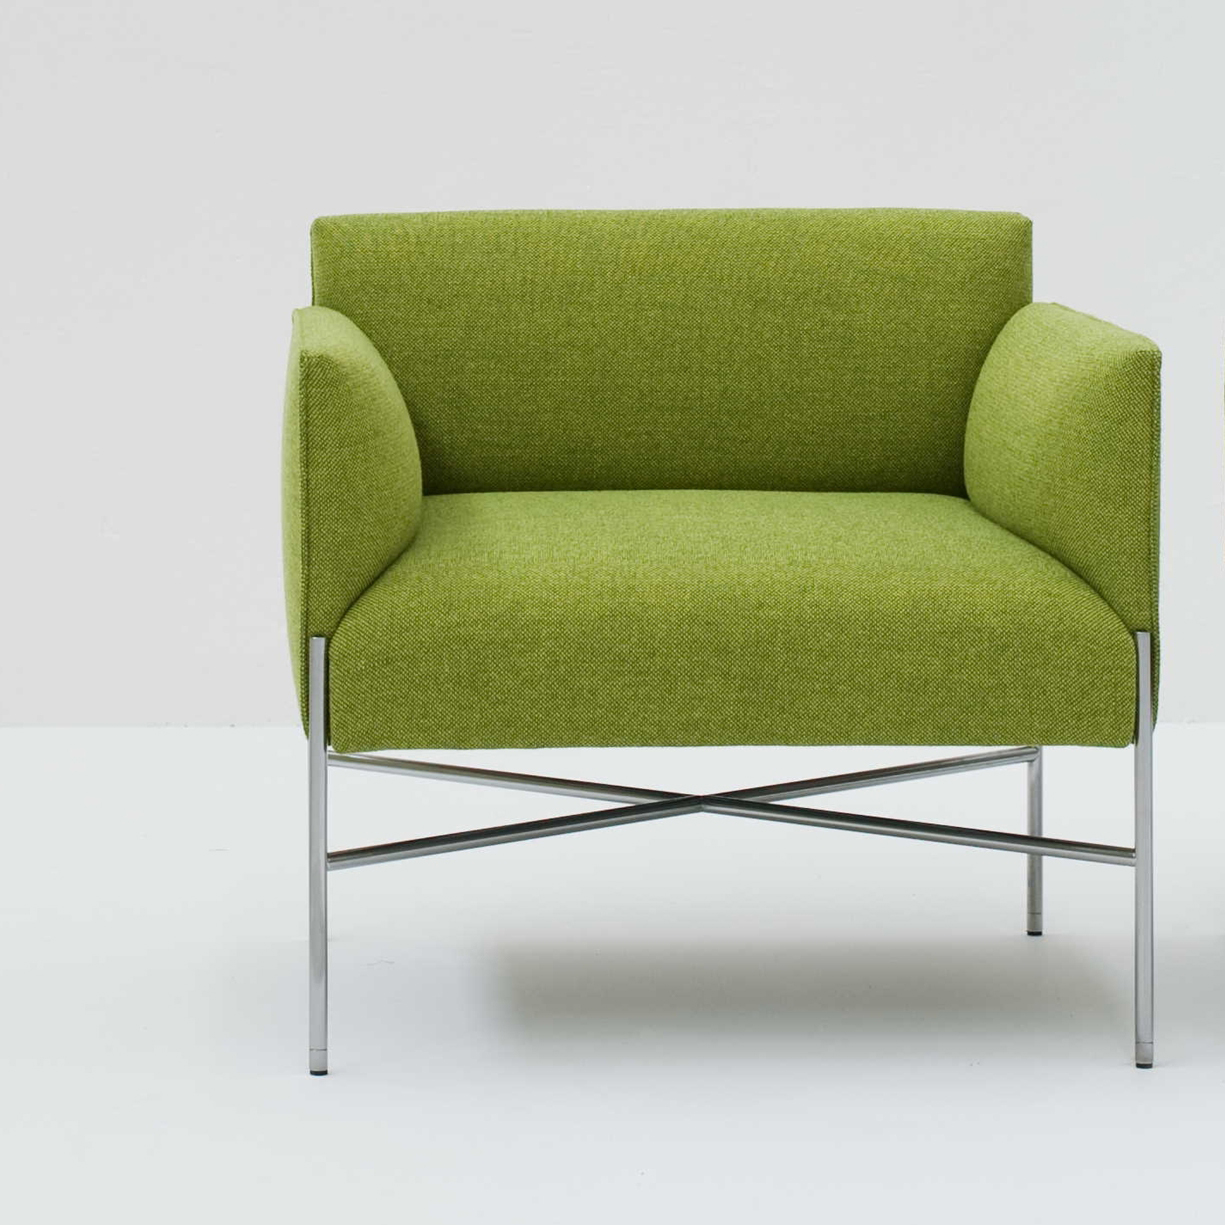 chill out chair designed by gordon guillaumier tacchini